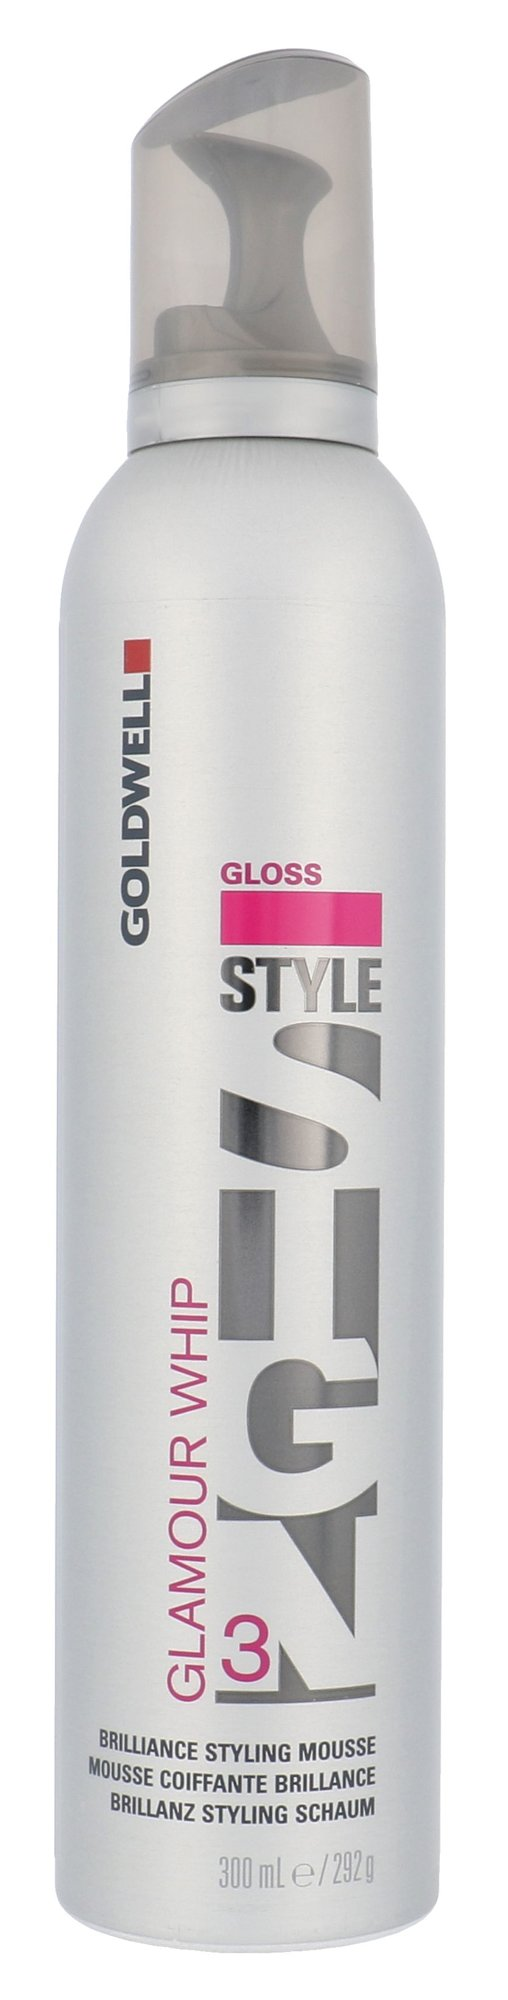 Goldwell Style Sign Gloss Cosmetic 300ml